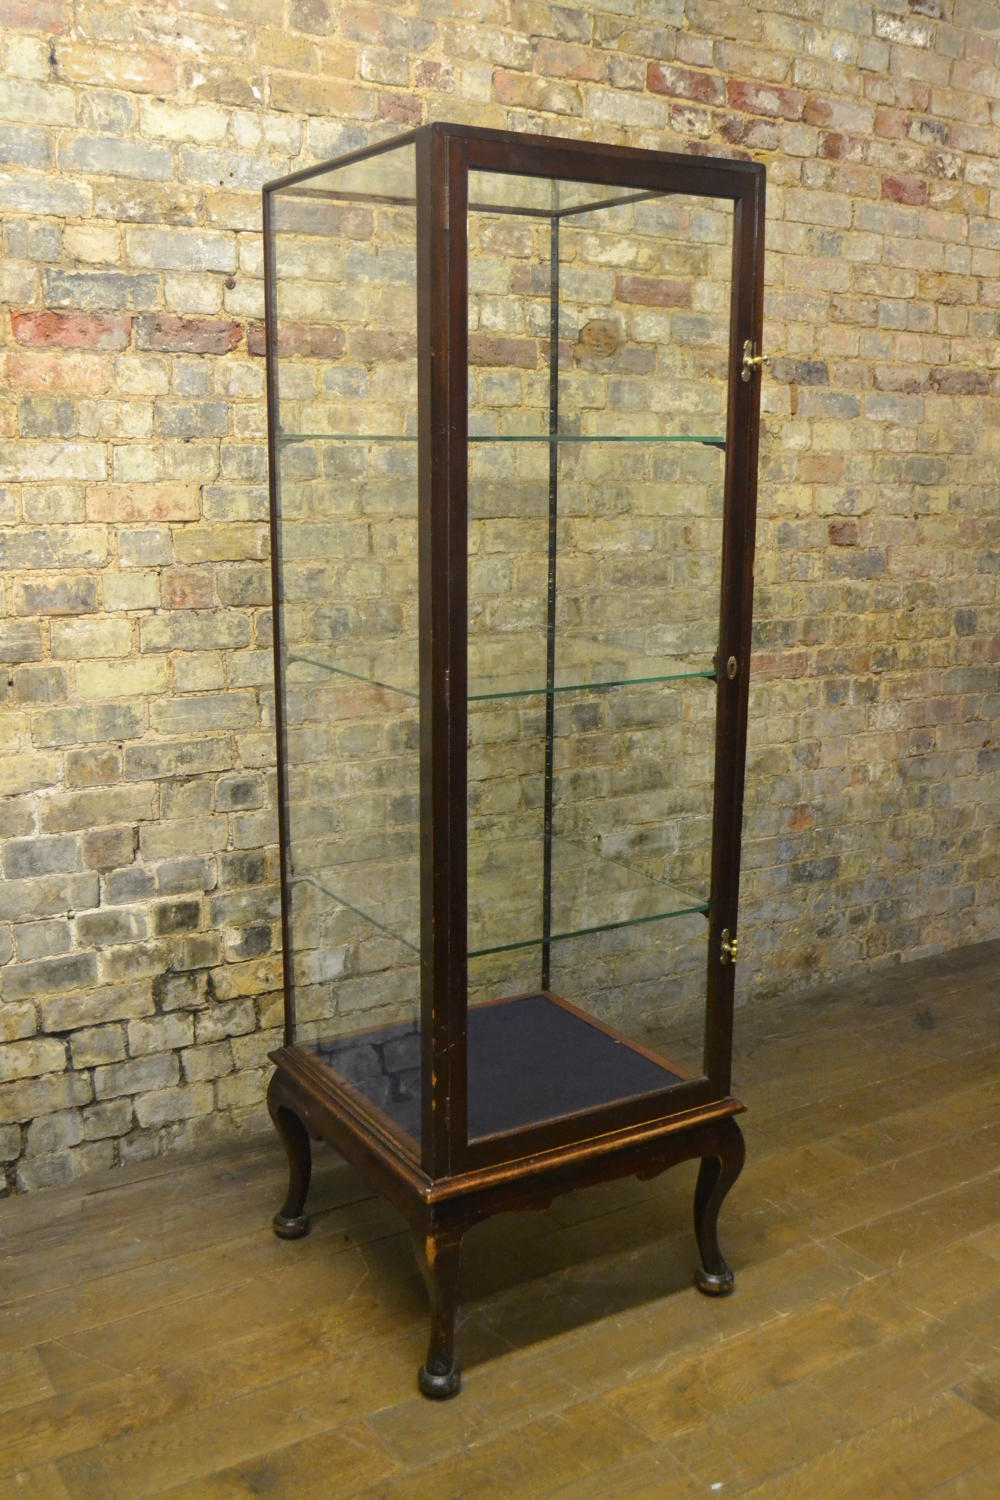 Antique Victorian Shop Display Cabinet - picture 1 ... - Antique Victorian Shop Display Cabinet In Wall & Tower Cabinets